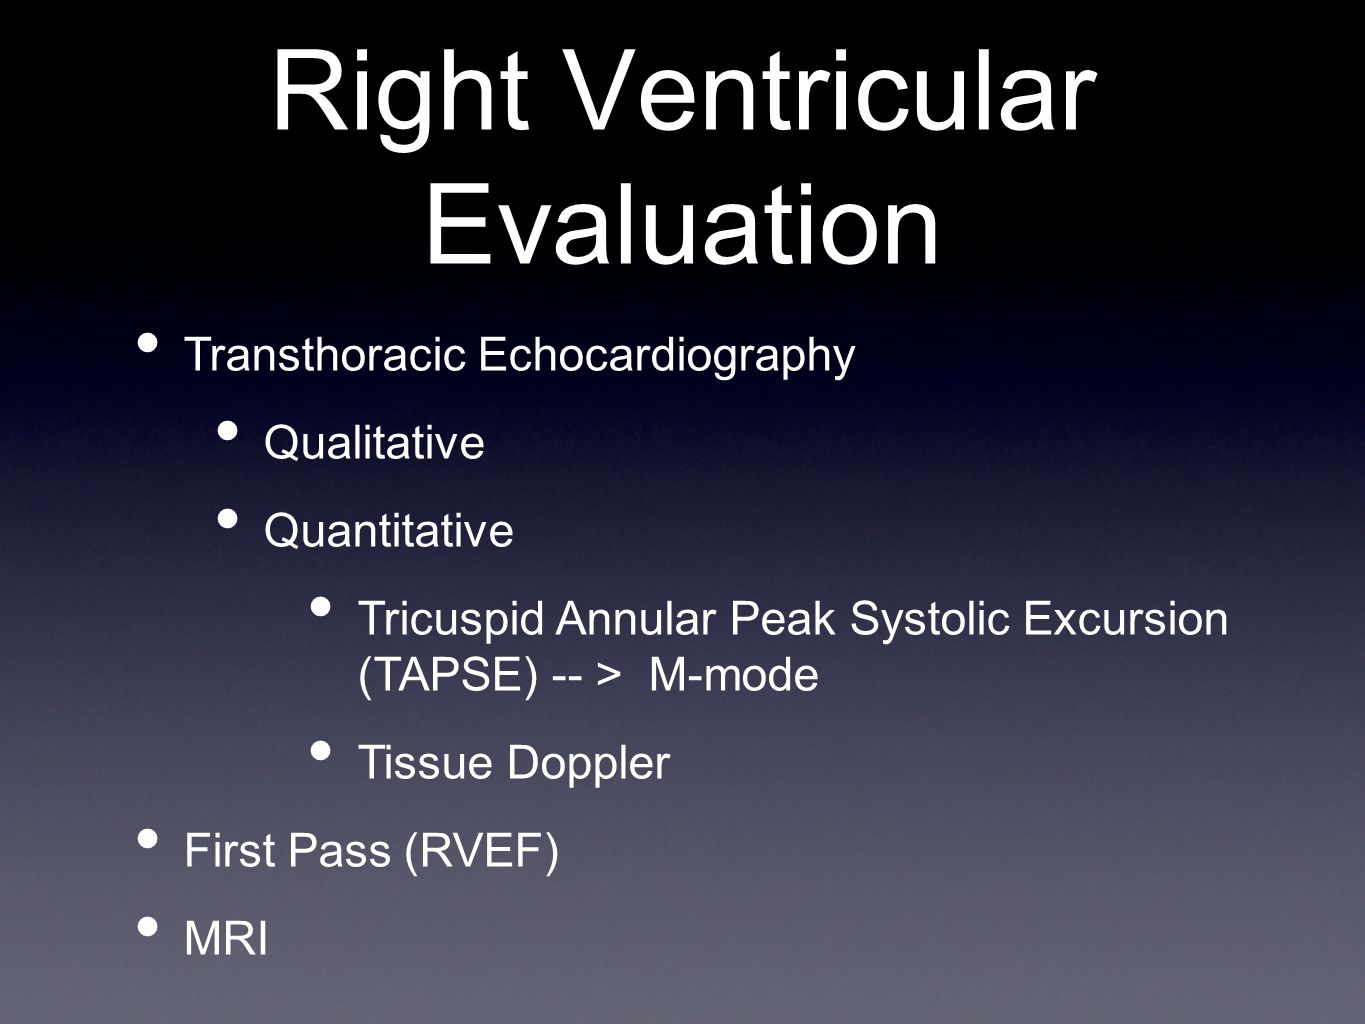 Right Ventricular Evaluation